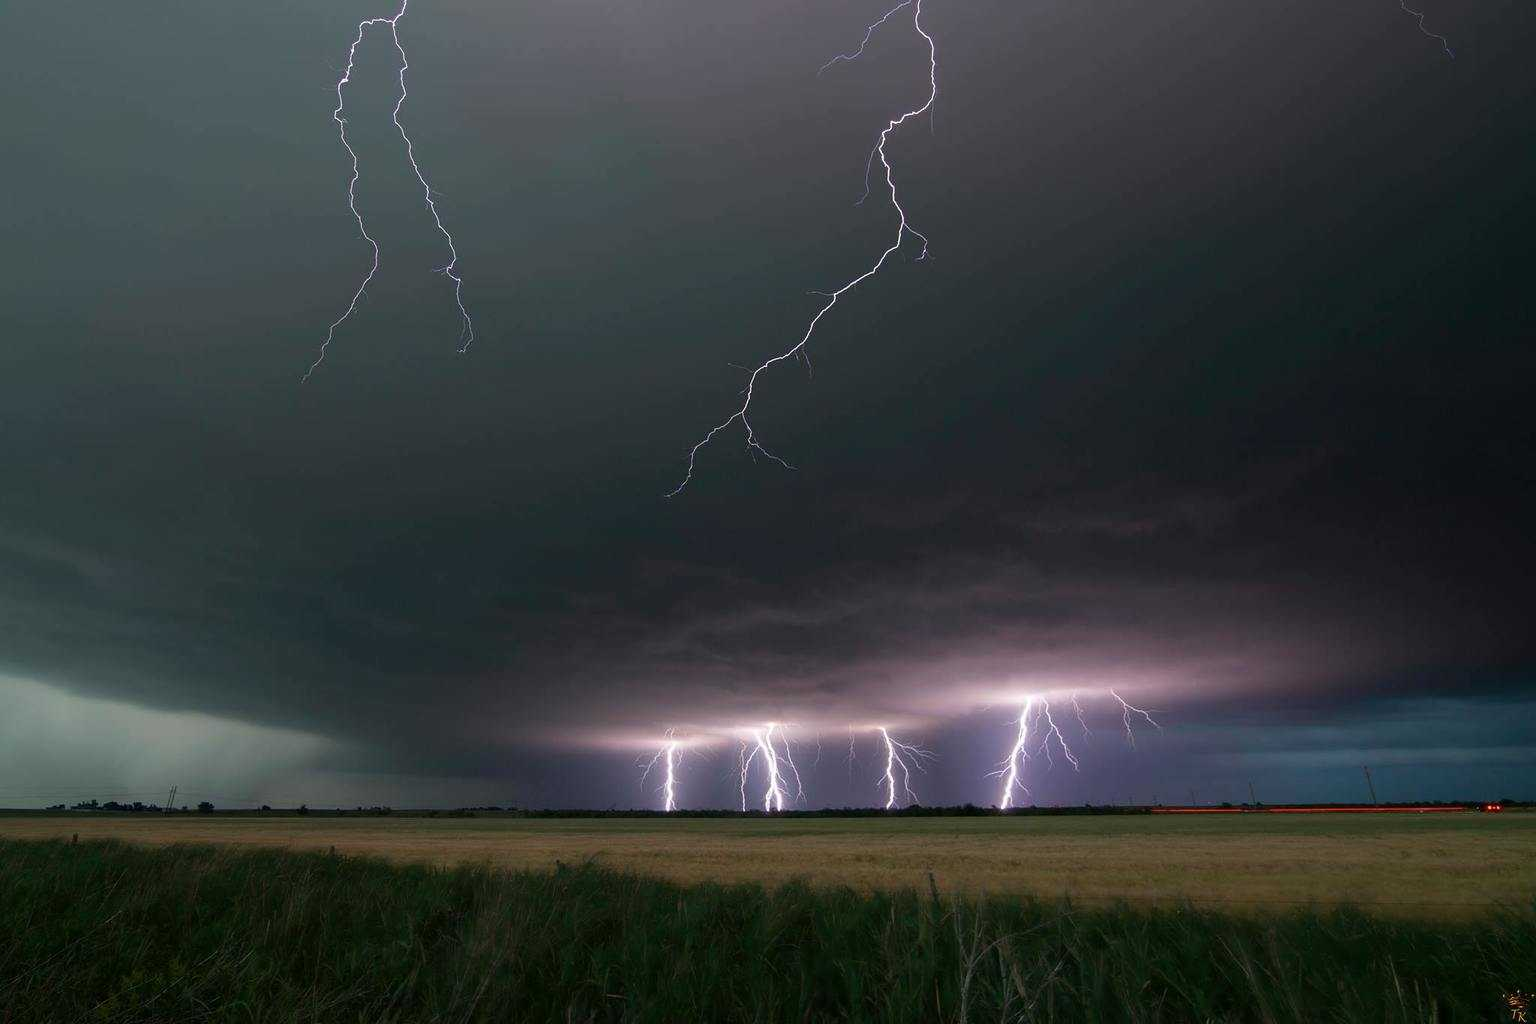 Lightning stack from earlier in the month around Carnegie, OK ... the bolts crawling over the top of the picture were from a huge CG that blasted right behind us ... it was pretty intense!